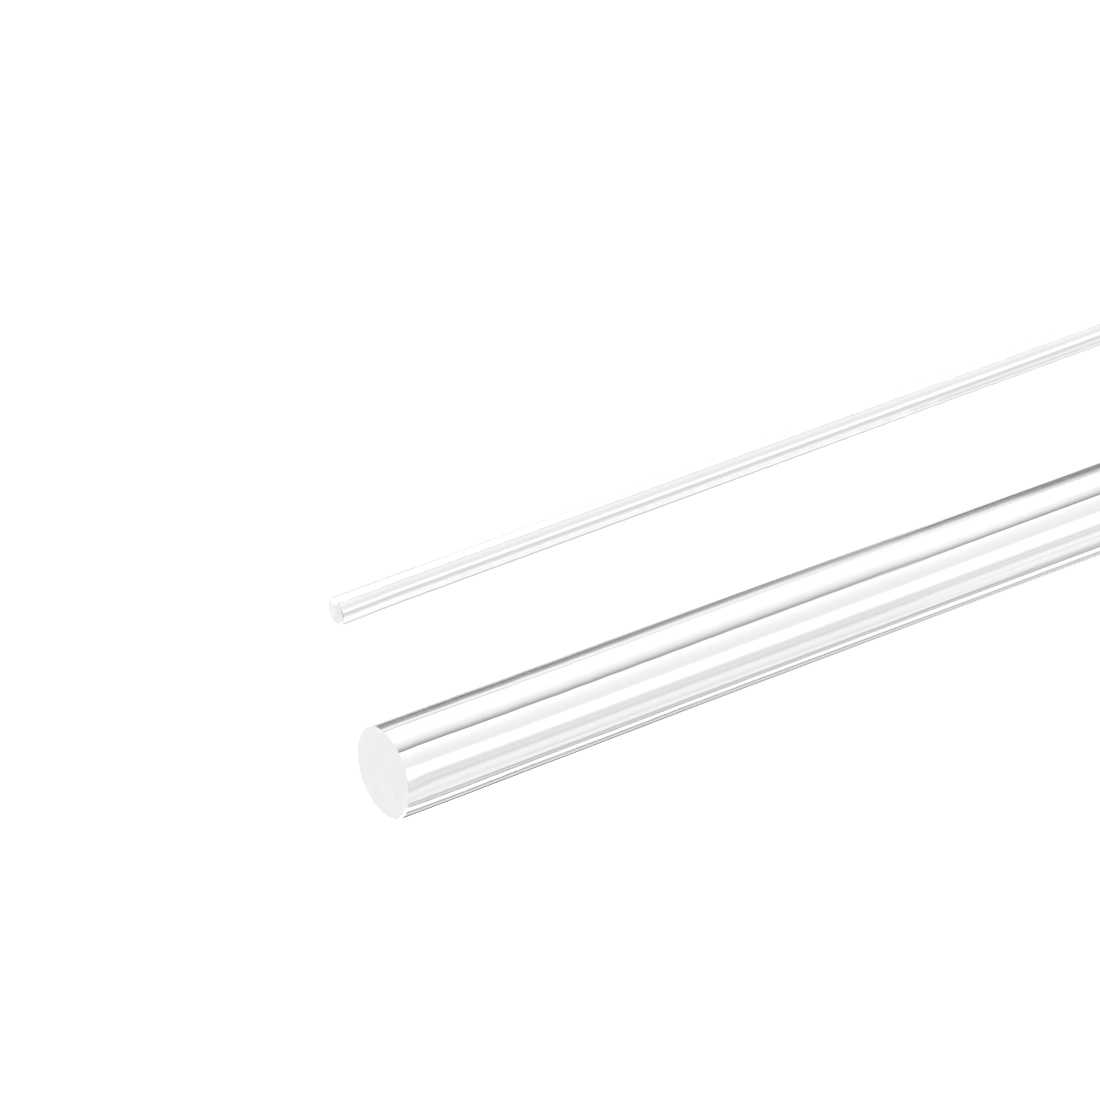 Od5x1000mm Acrylic Rods Clear Stick Home Improvement Towel